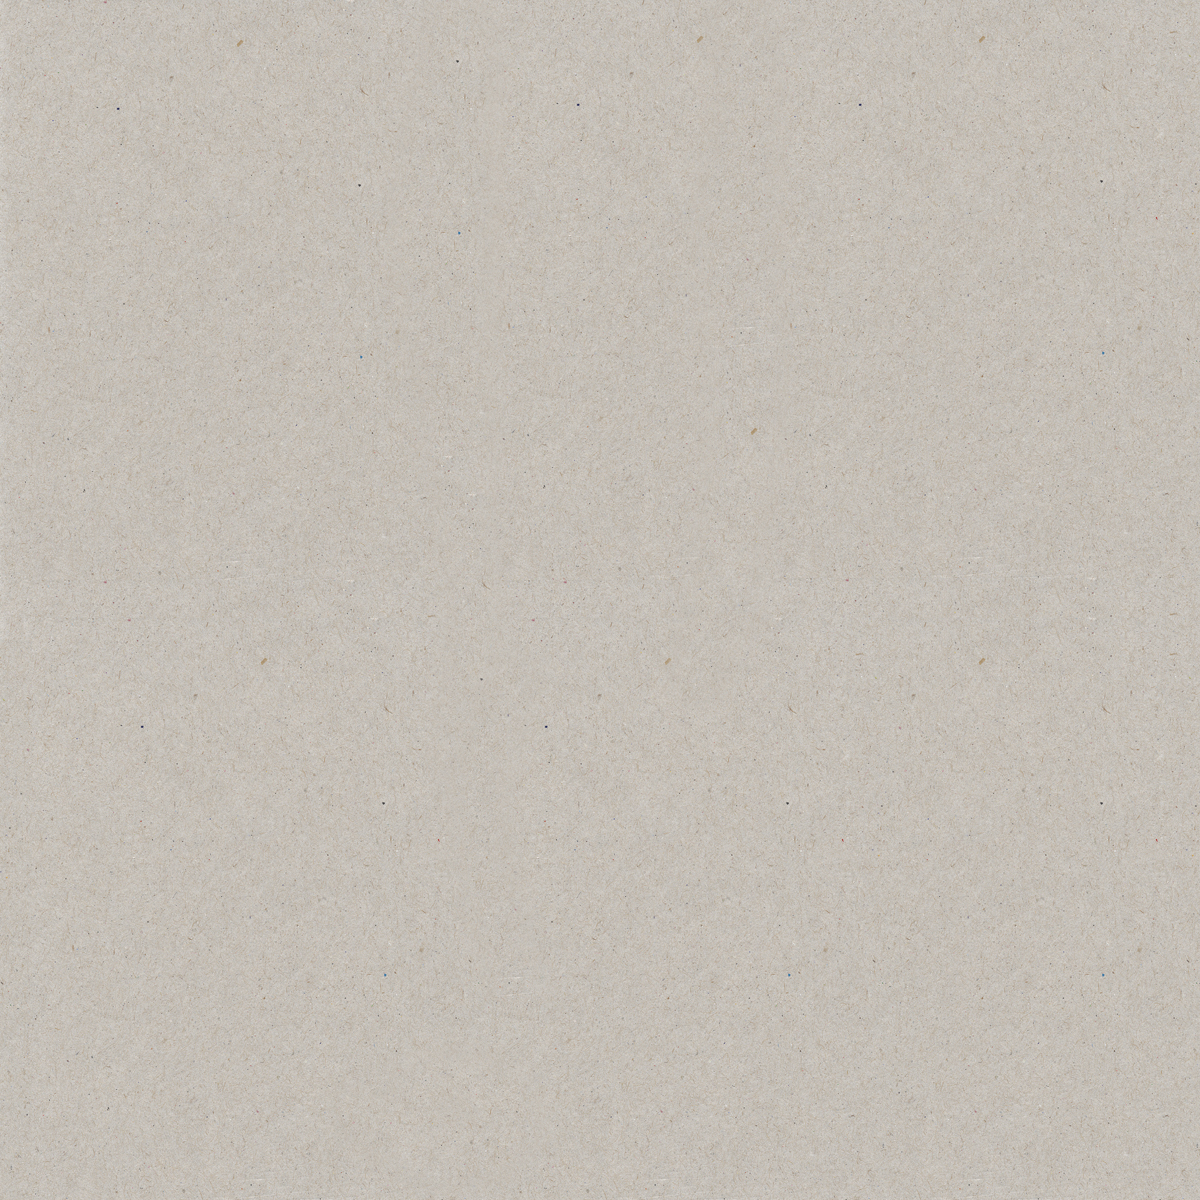 Bazzill:Chipboard 12x12 Natural-grey